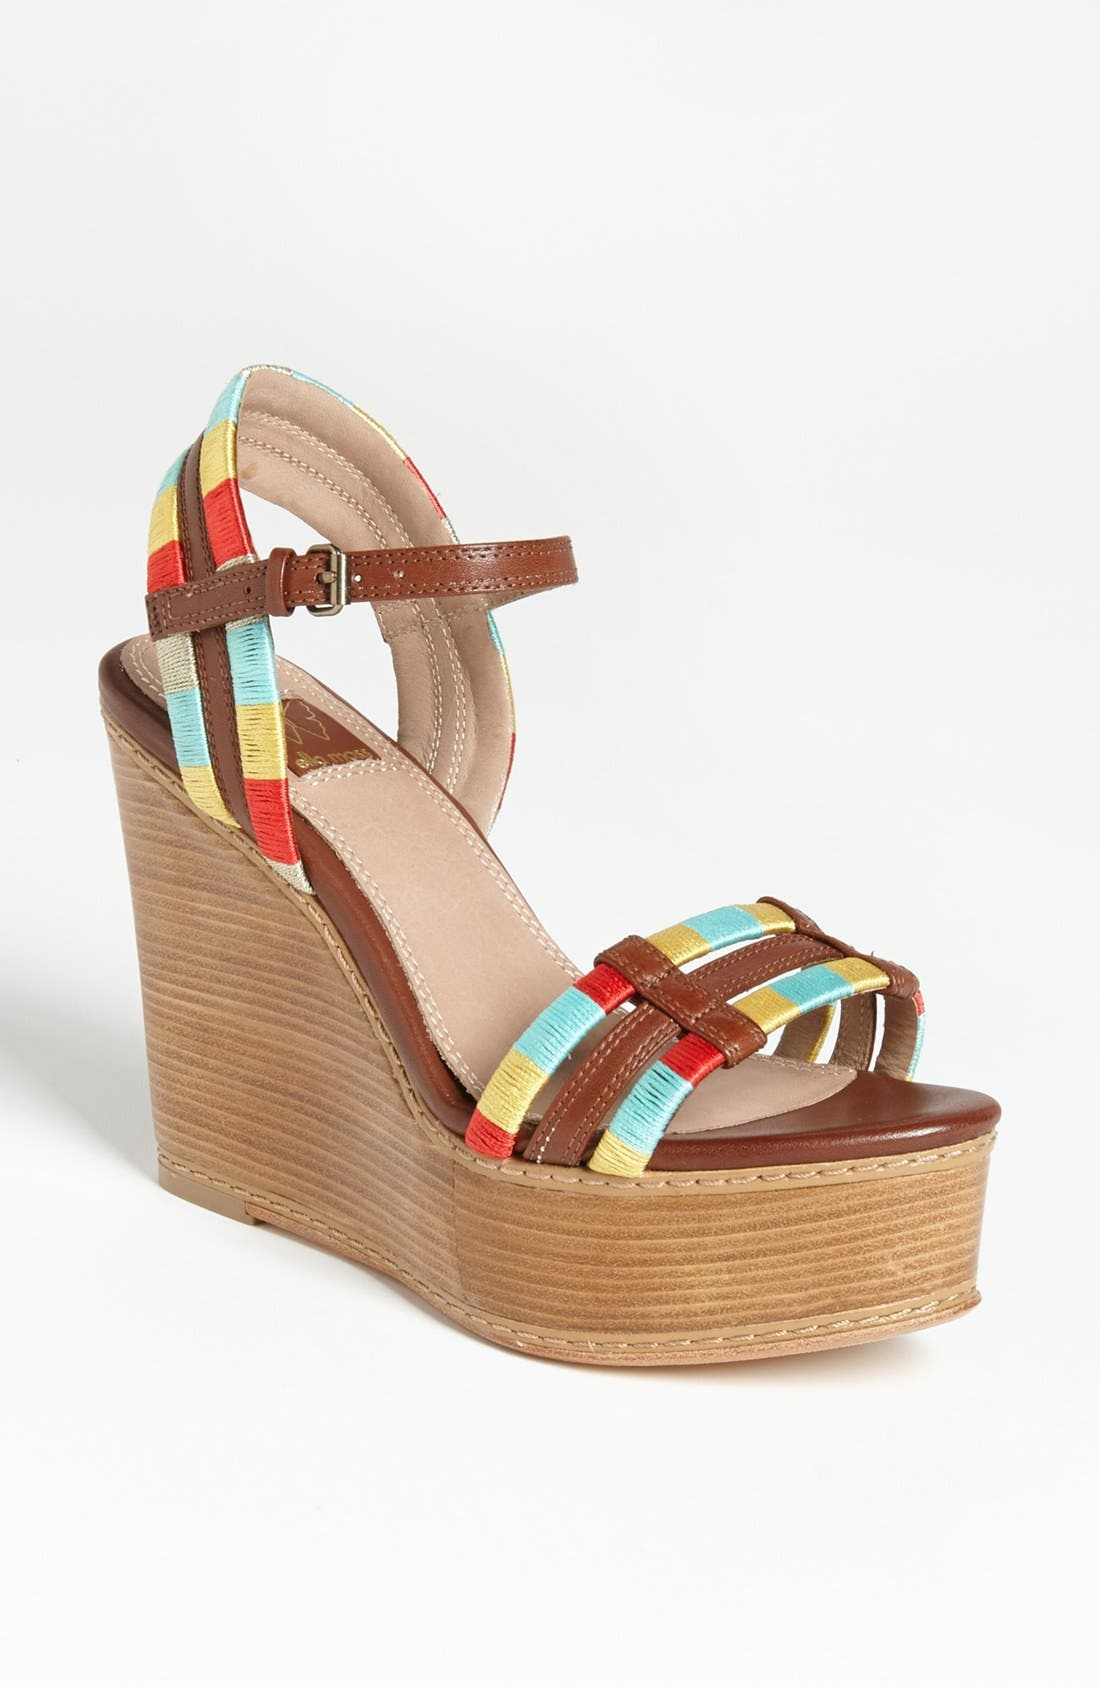 Alternate Image 1 Selected - Ella Moss 'Ryann' Sandal